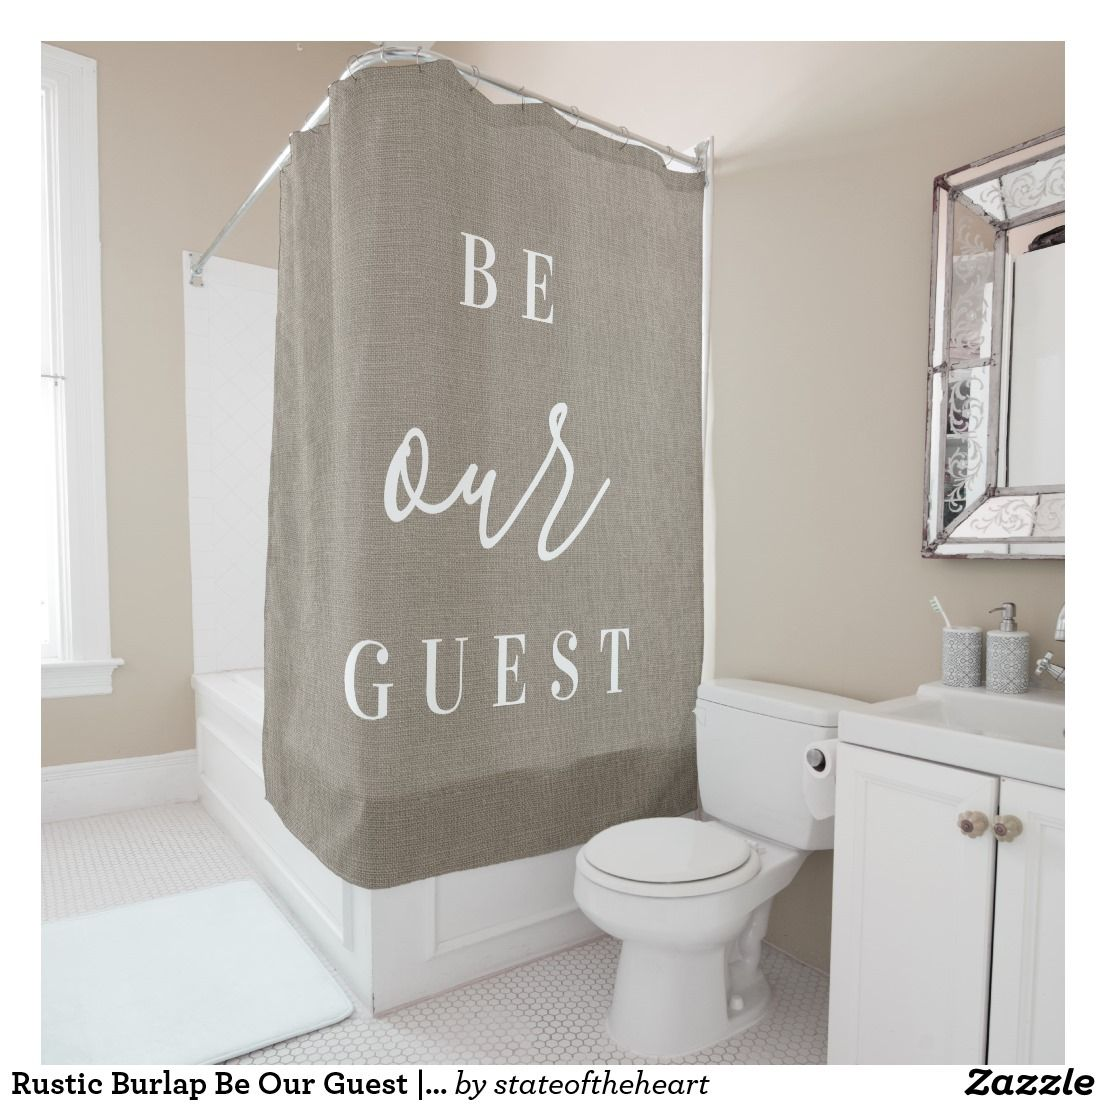 Rustic Burlap Be Our Guest Farmhouse Bathroom Shower Curtain